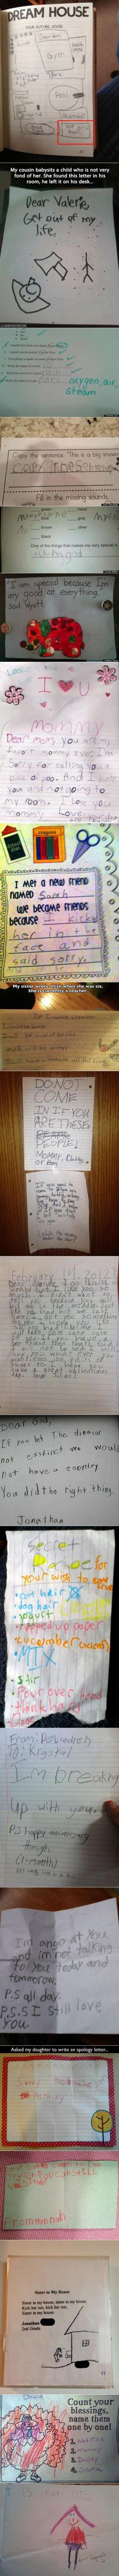 We have rounded up some funny and unusual, yet real, notes from geeky kids.: Funny Kids Letters, Funny Kids Notes, Geeky Kids, Funny Notes From Kids, Died Reading, Funny Letters From Kids, Funny Kid Letters, Future Kids, Funny Teachers